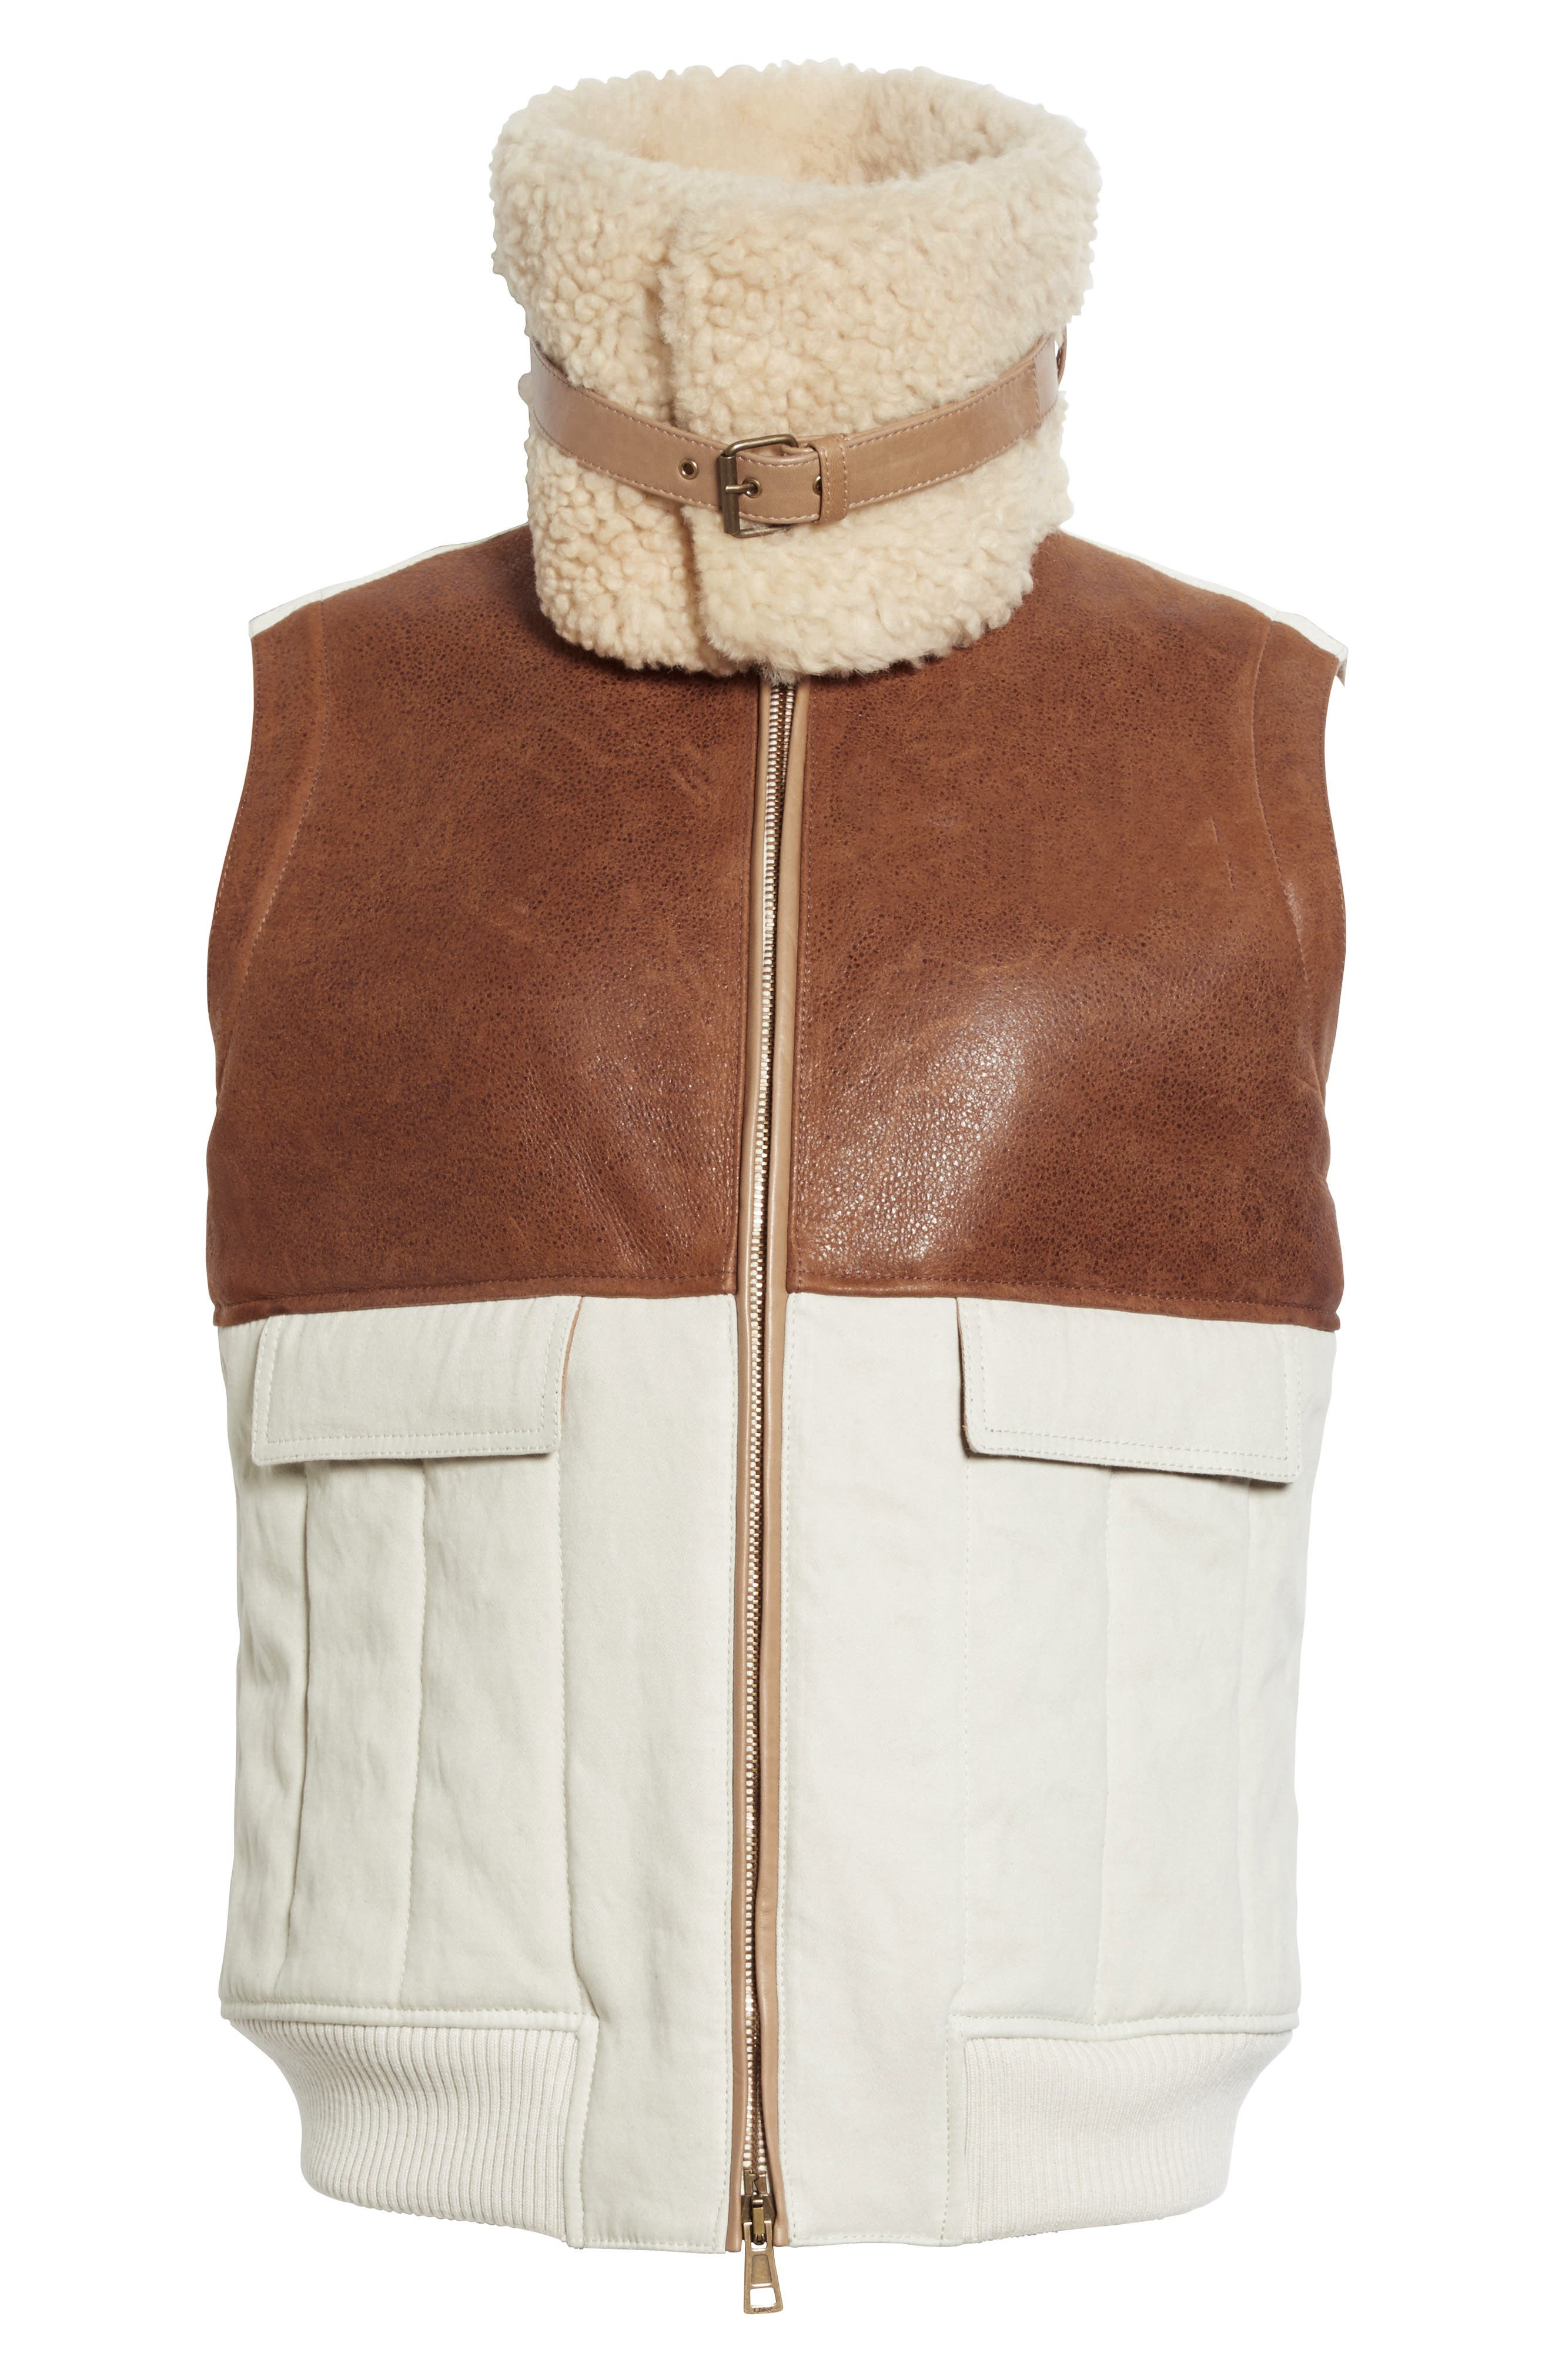 Genuine Shearling Trim Leather & Cotton Vest,                             Alternate thumbnail 8, color,                             Brown/ Beige